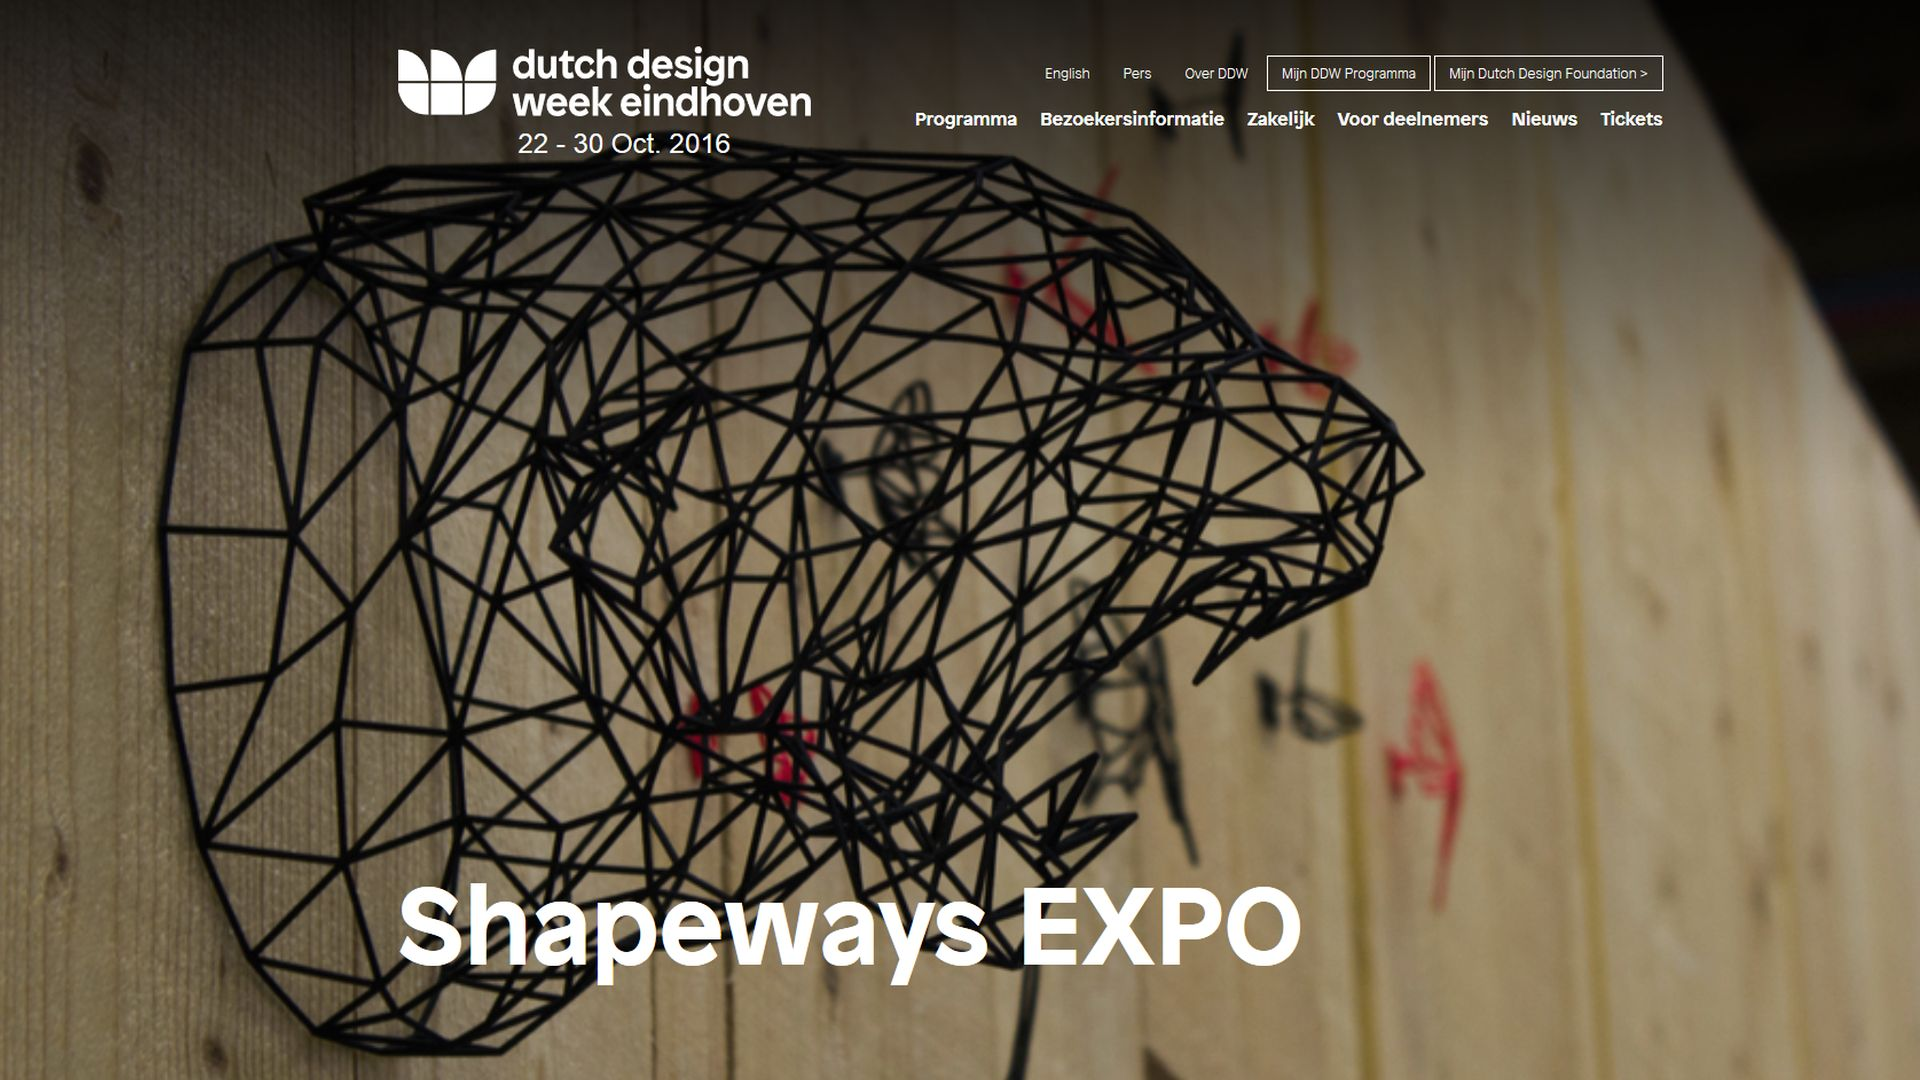 Shapeways_High_Tech_Campus_Eindhoven_-_kopie.jpg